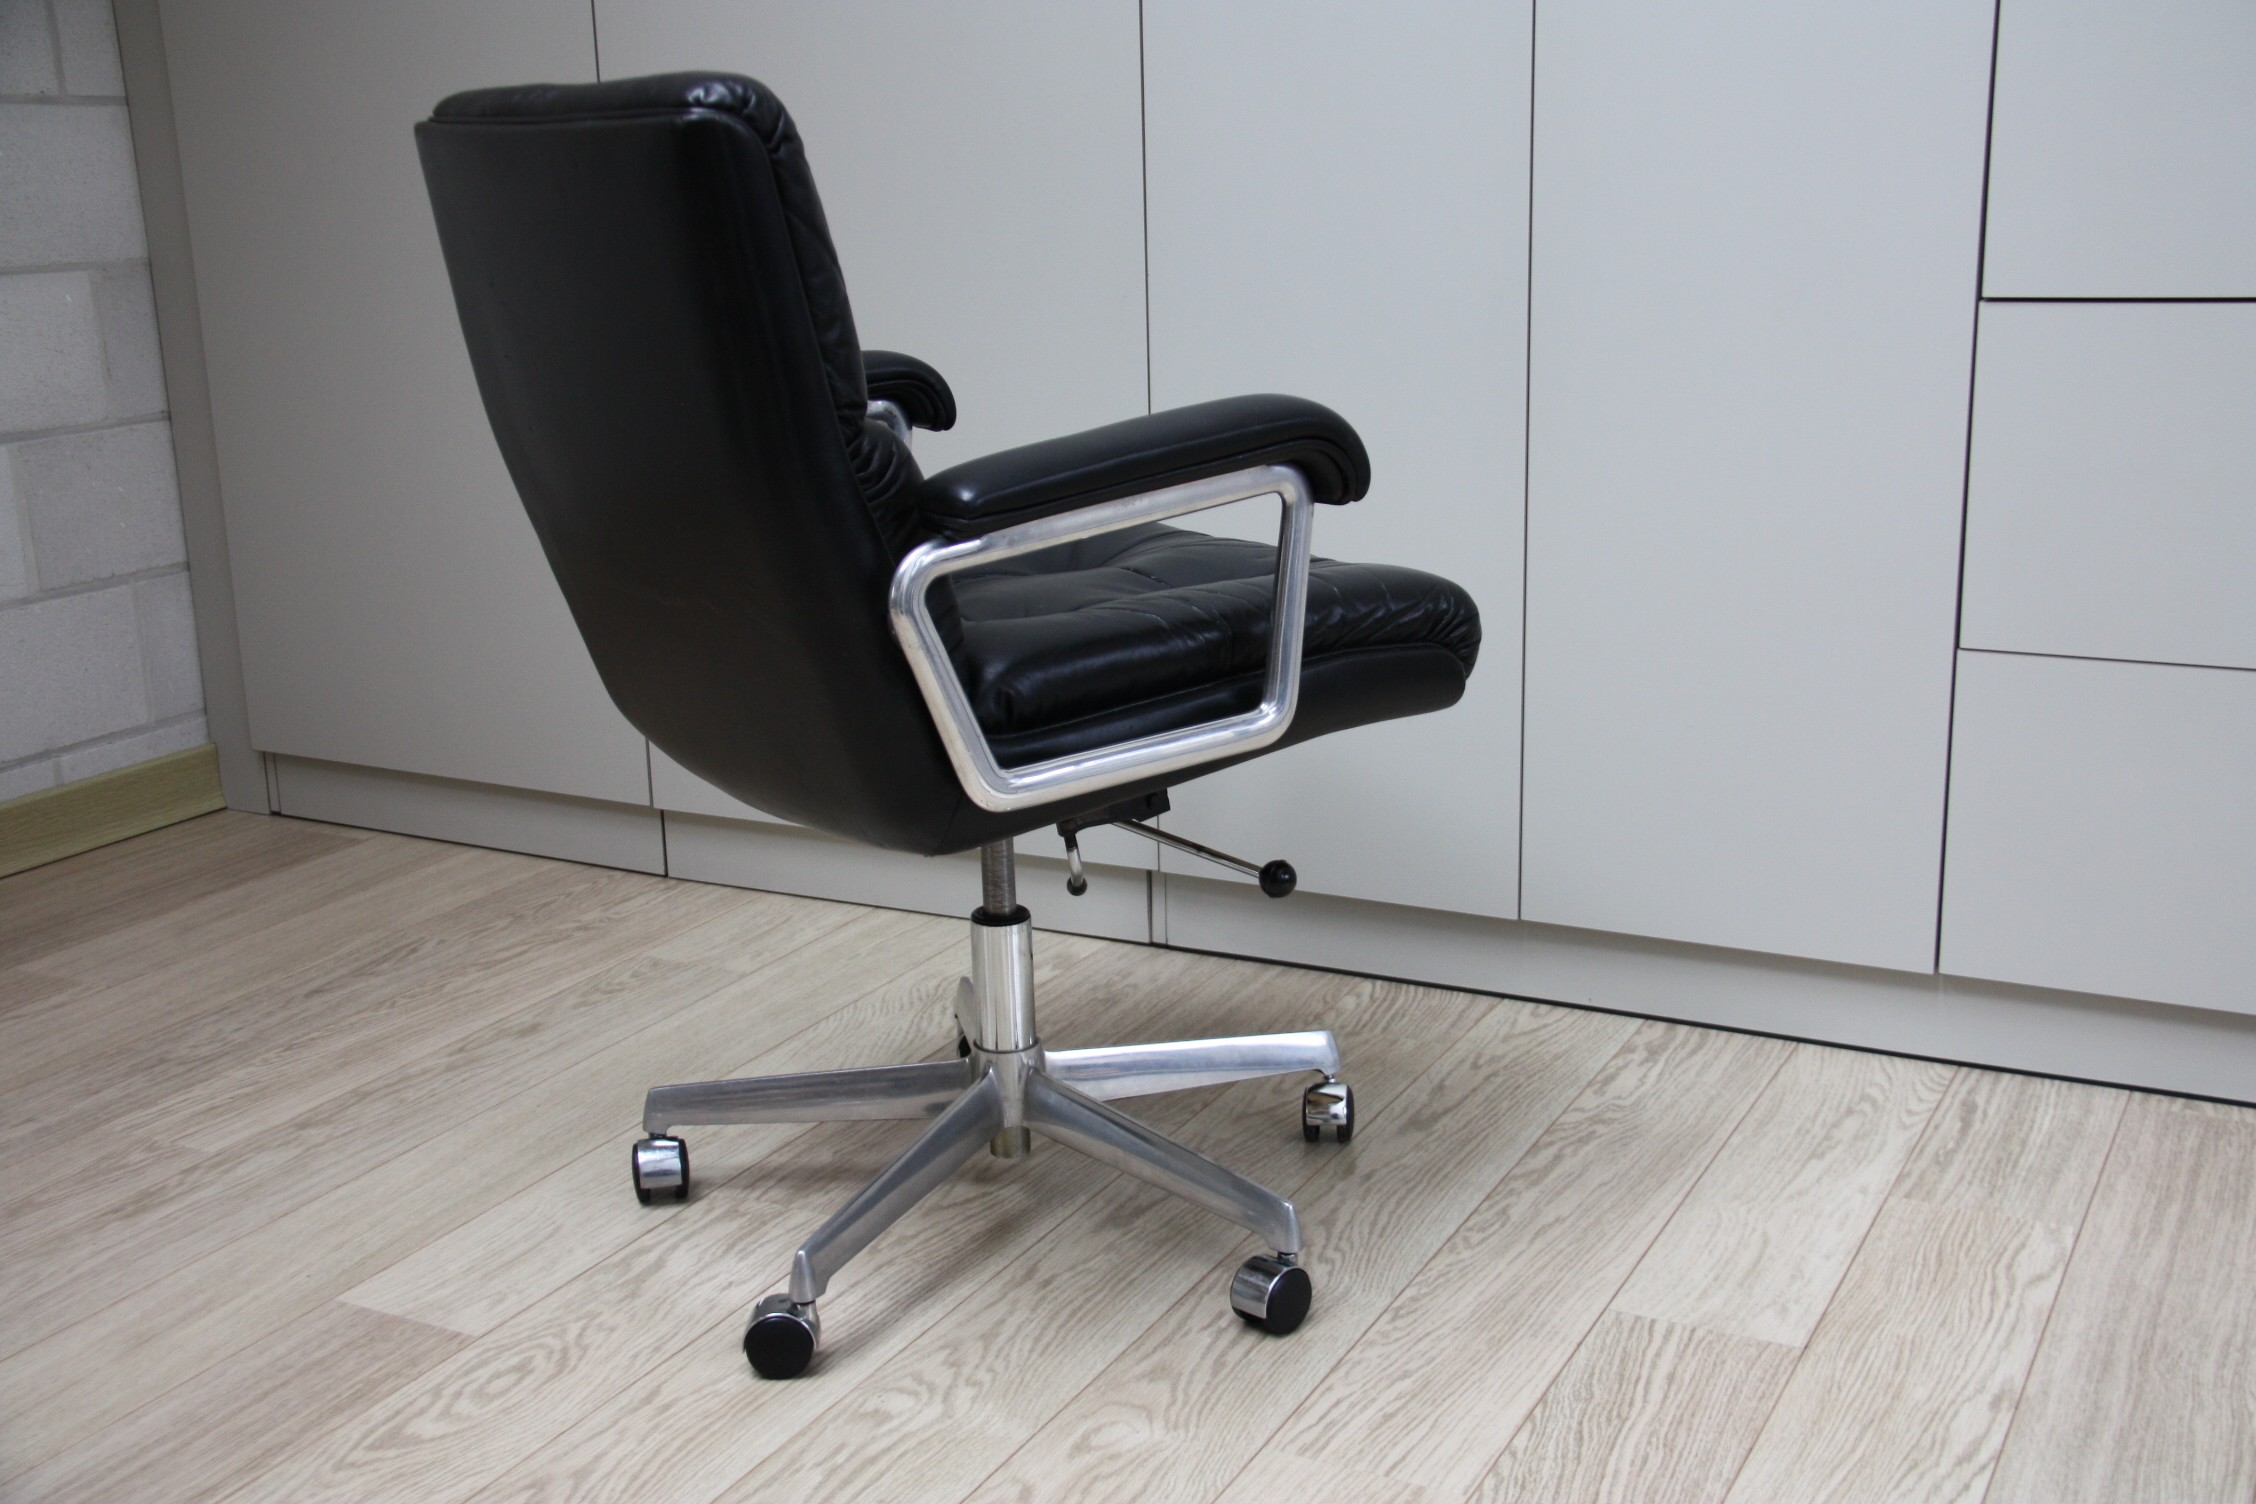 german office chairs. Previous Next German Office Chairs